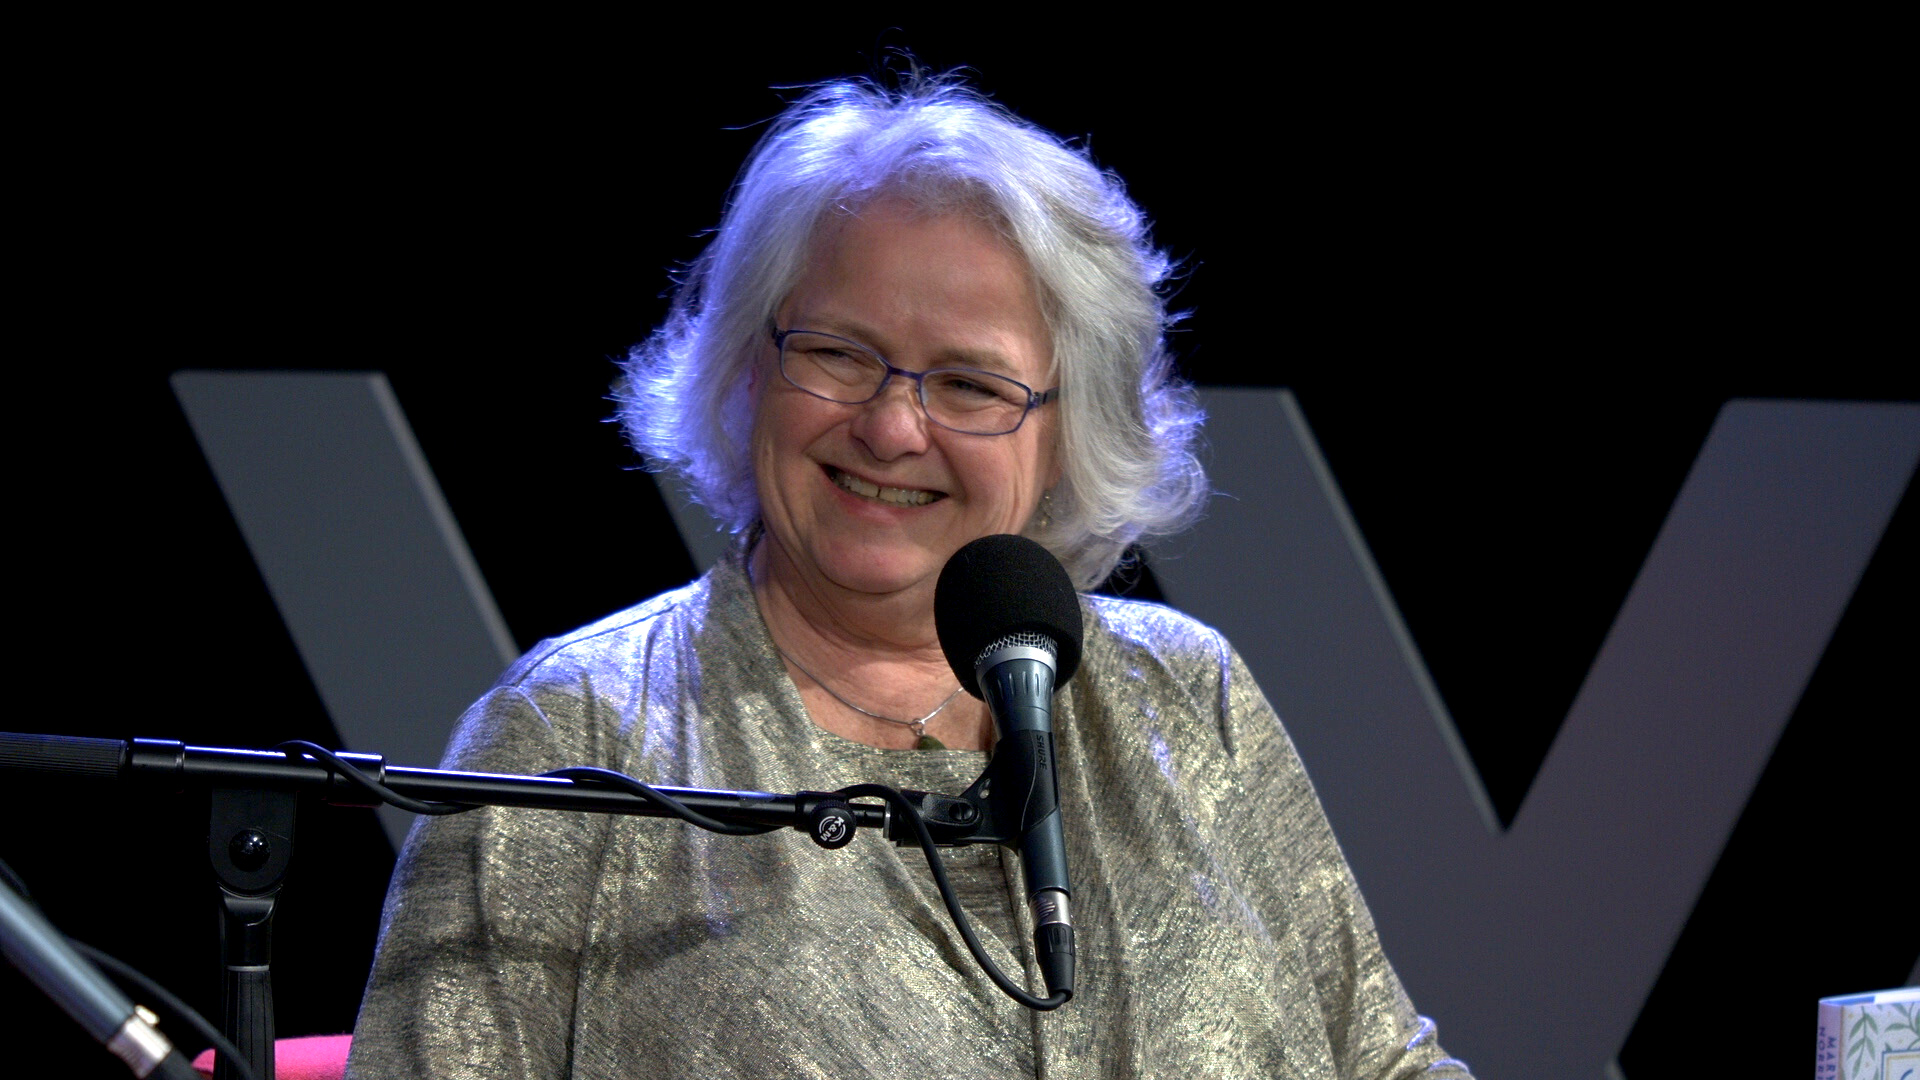 Photo of a woman with white, wavy hair – backlit with a purple glow – smiling in front of a microphone